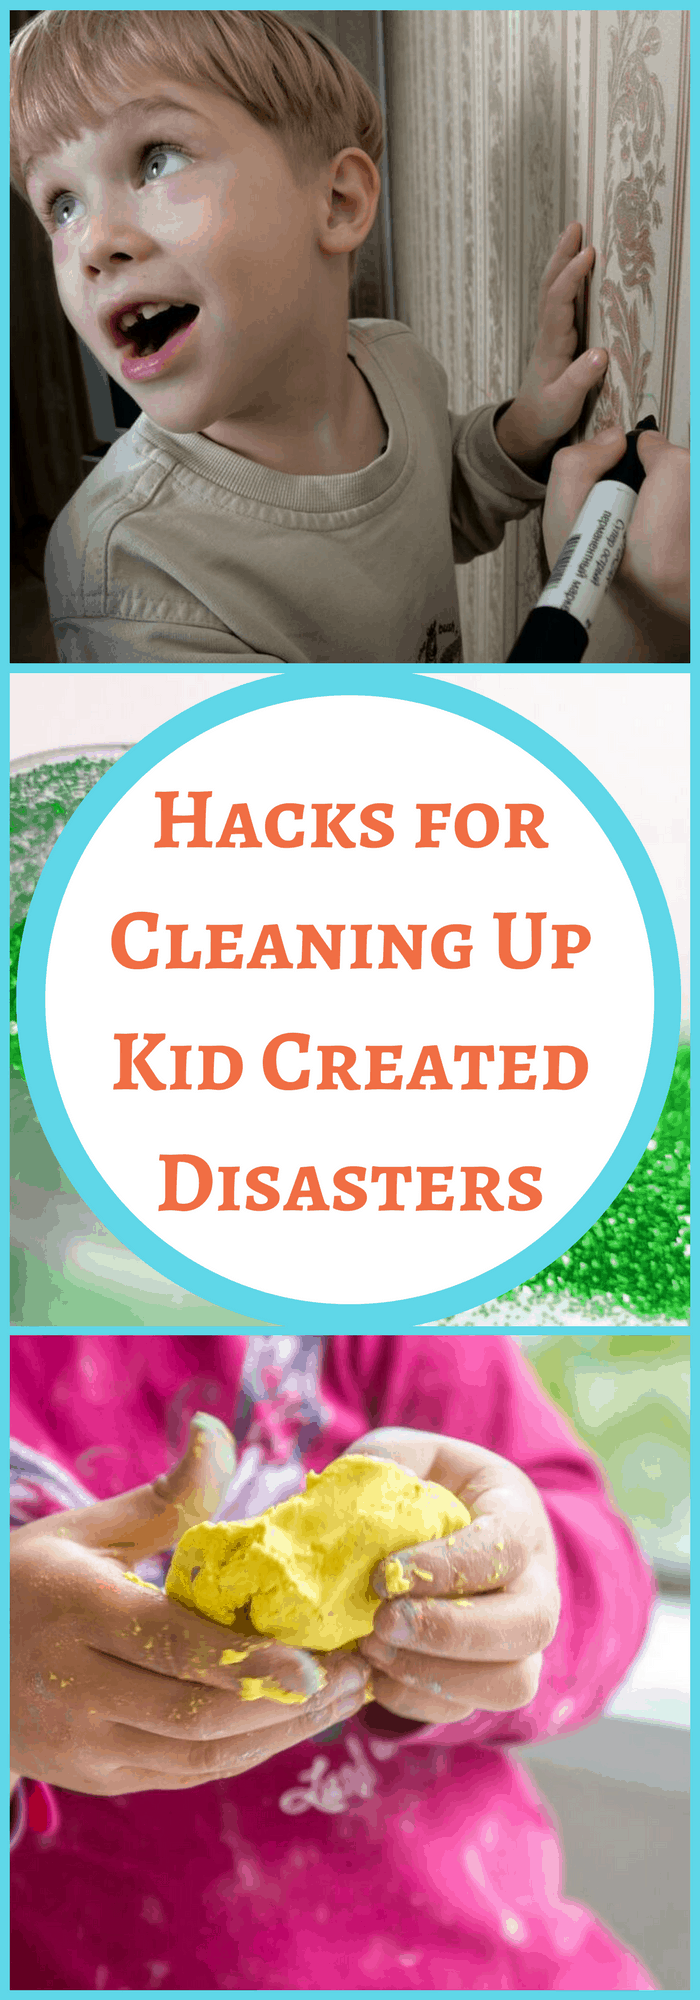 hacks for cleaning kid messes